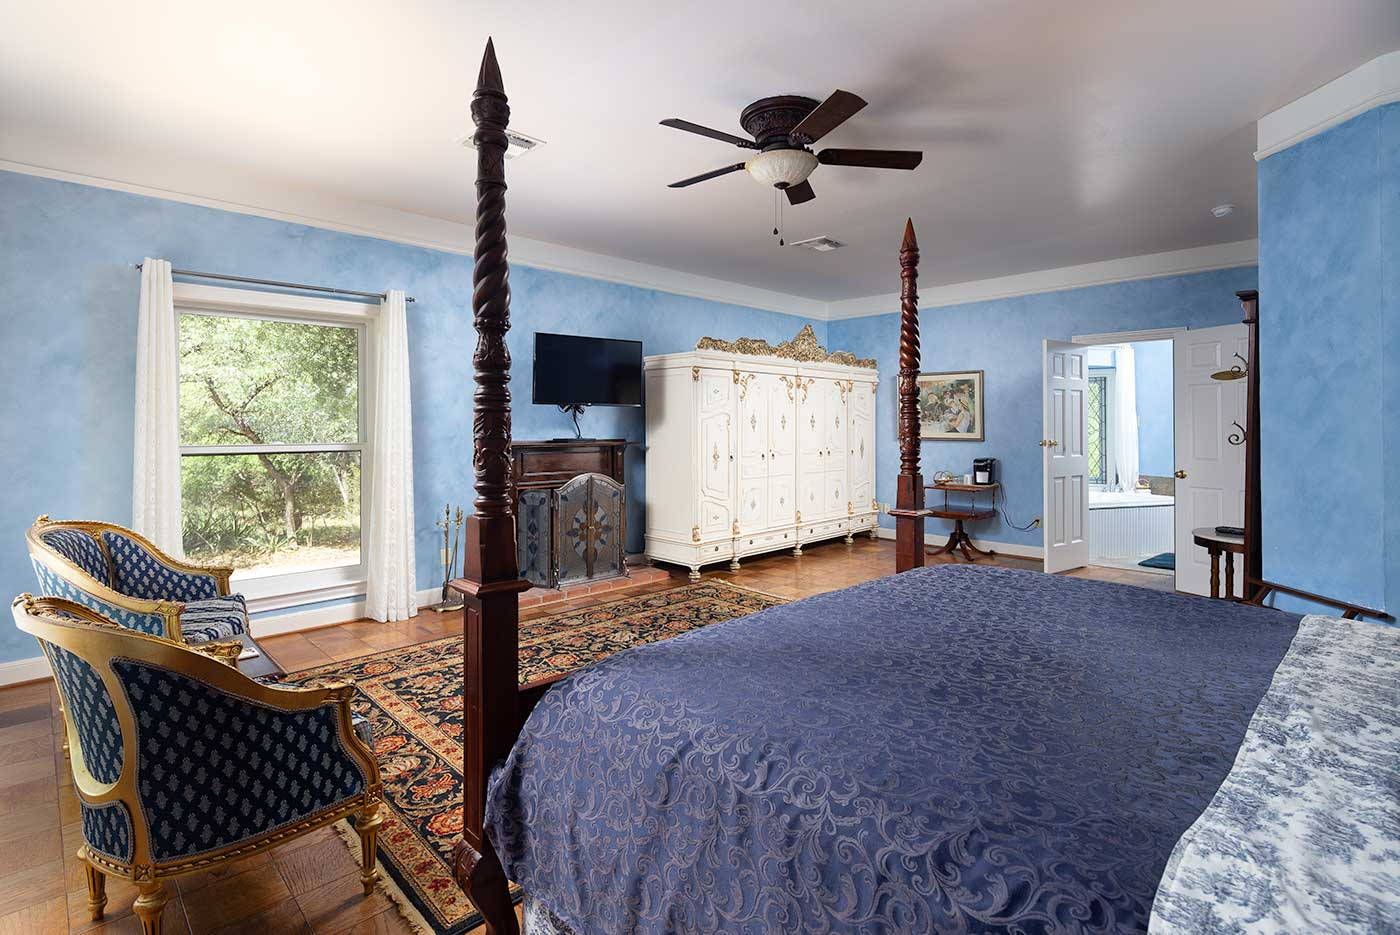 bluebonnet armoire bed chairs